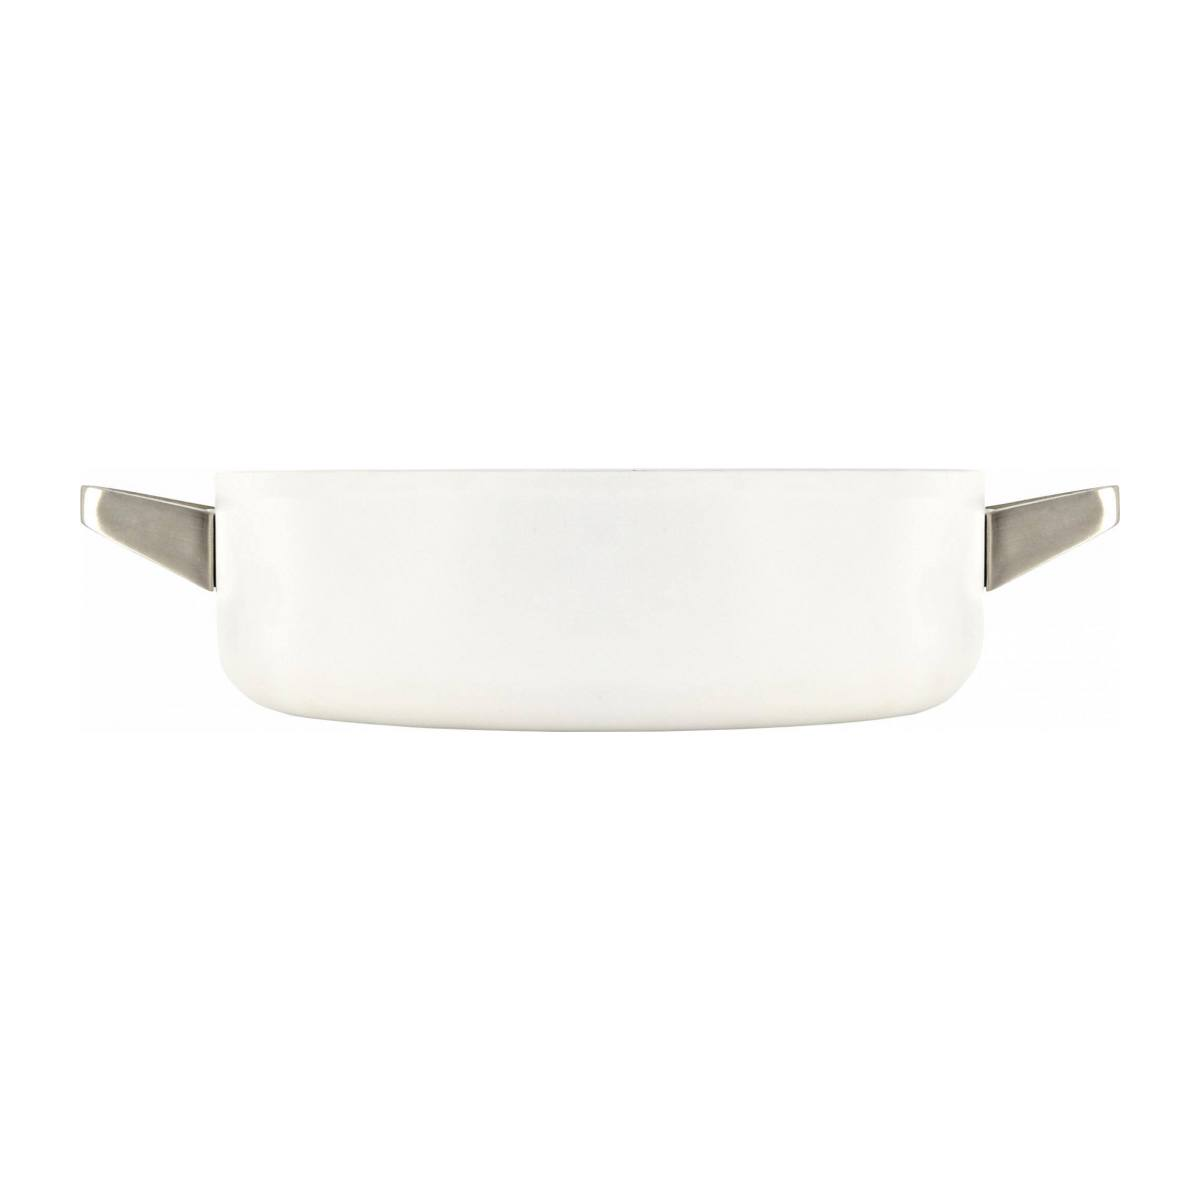 White aluminium saucepan and lid 26 cm with inner coating in ceramic n°2